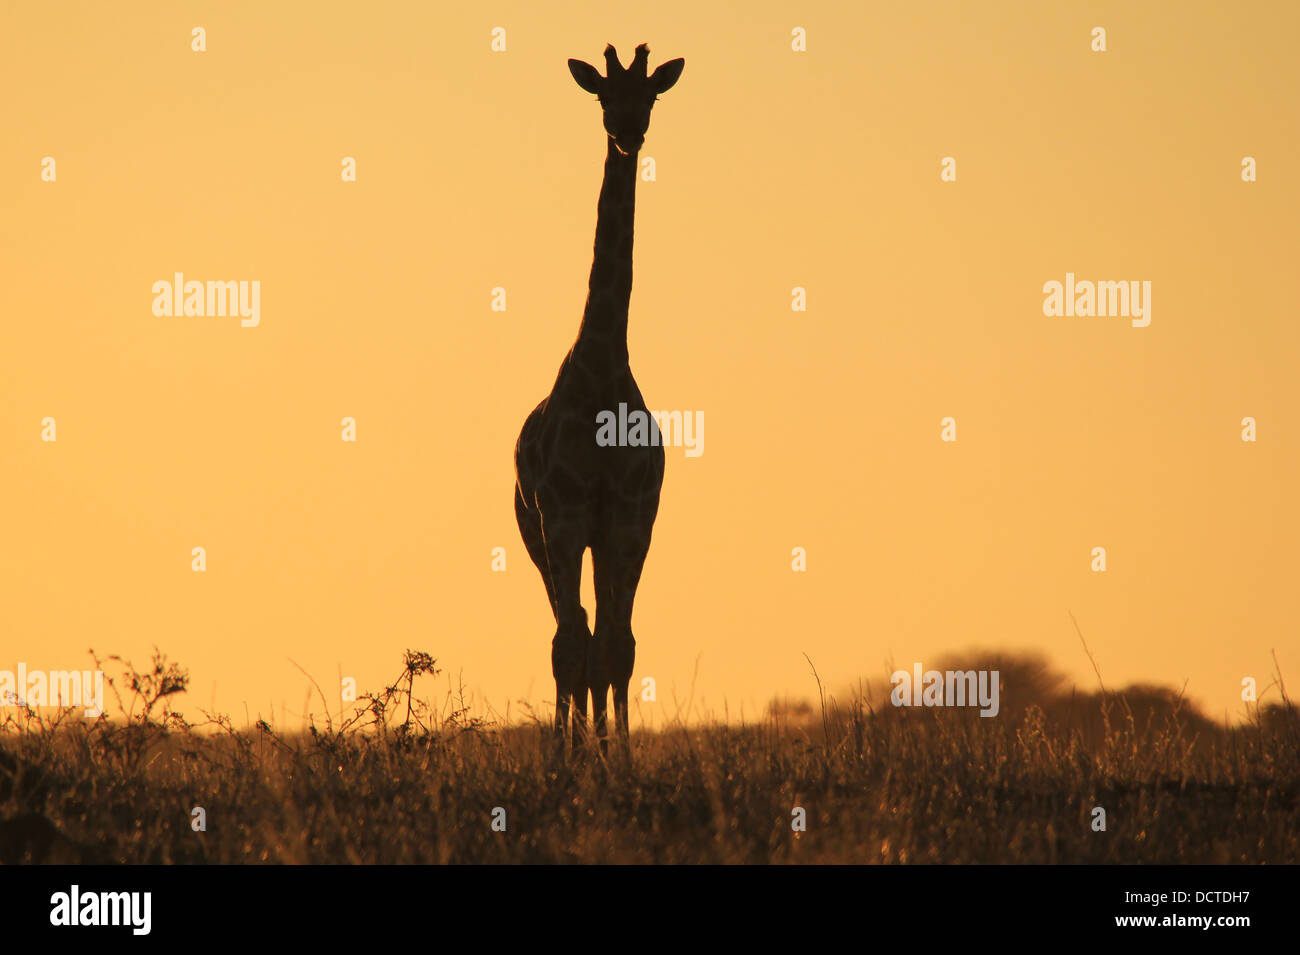 Giraffe Golden Gold stare from the Wilds of Africa.  Wildlife silhouette, color and background beauty. - Stock Image